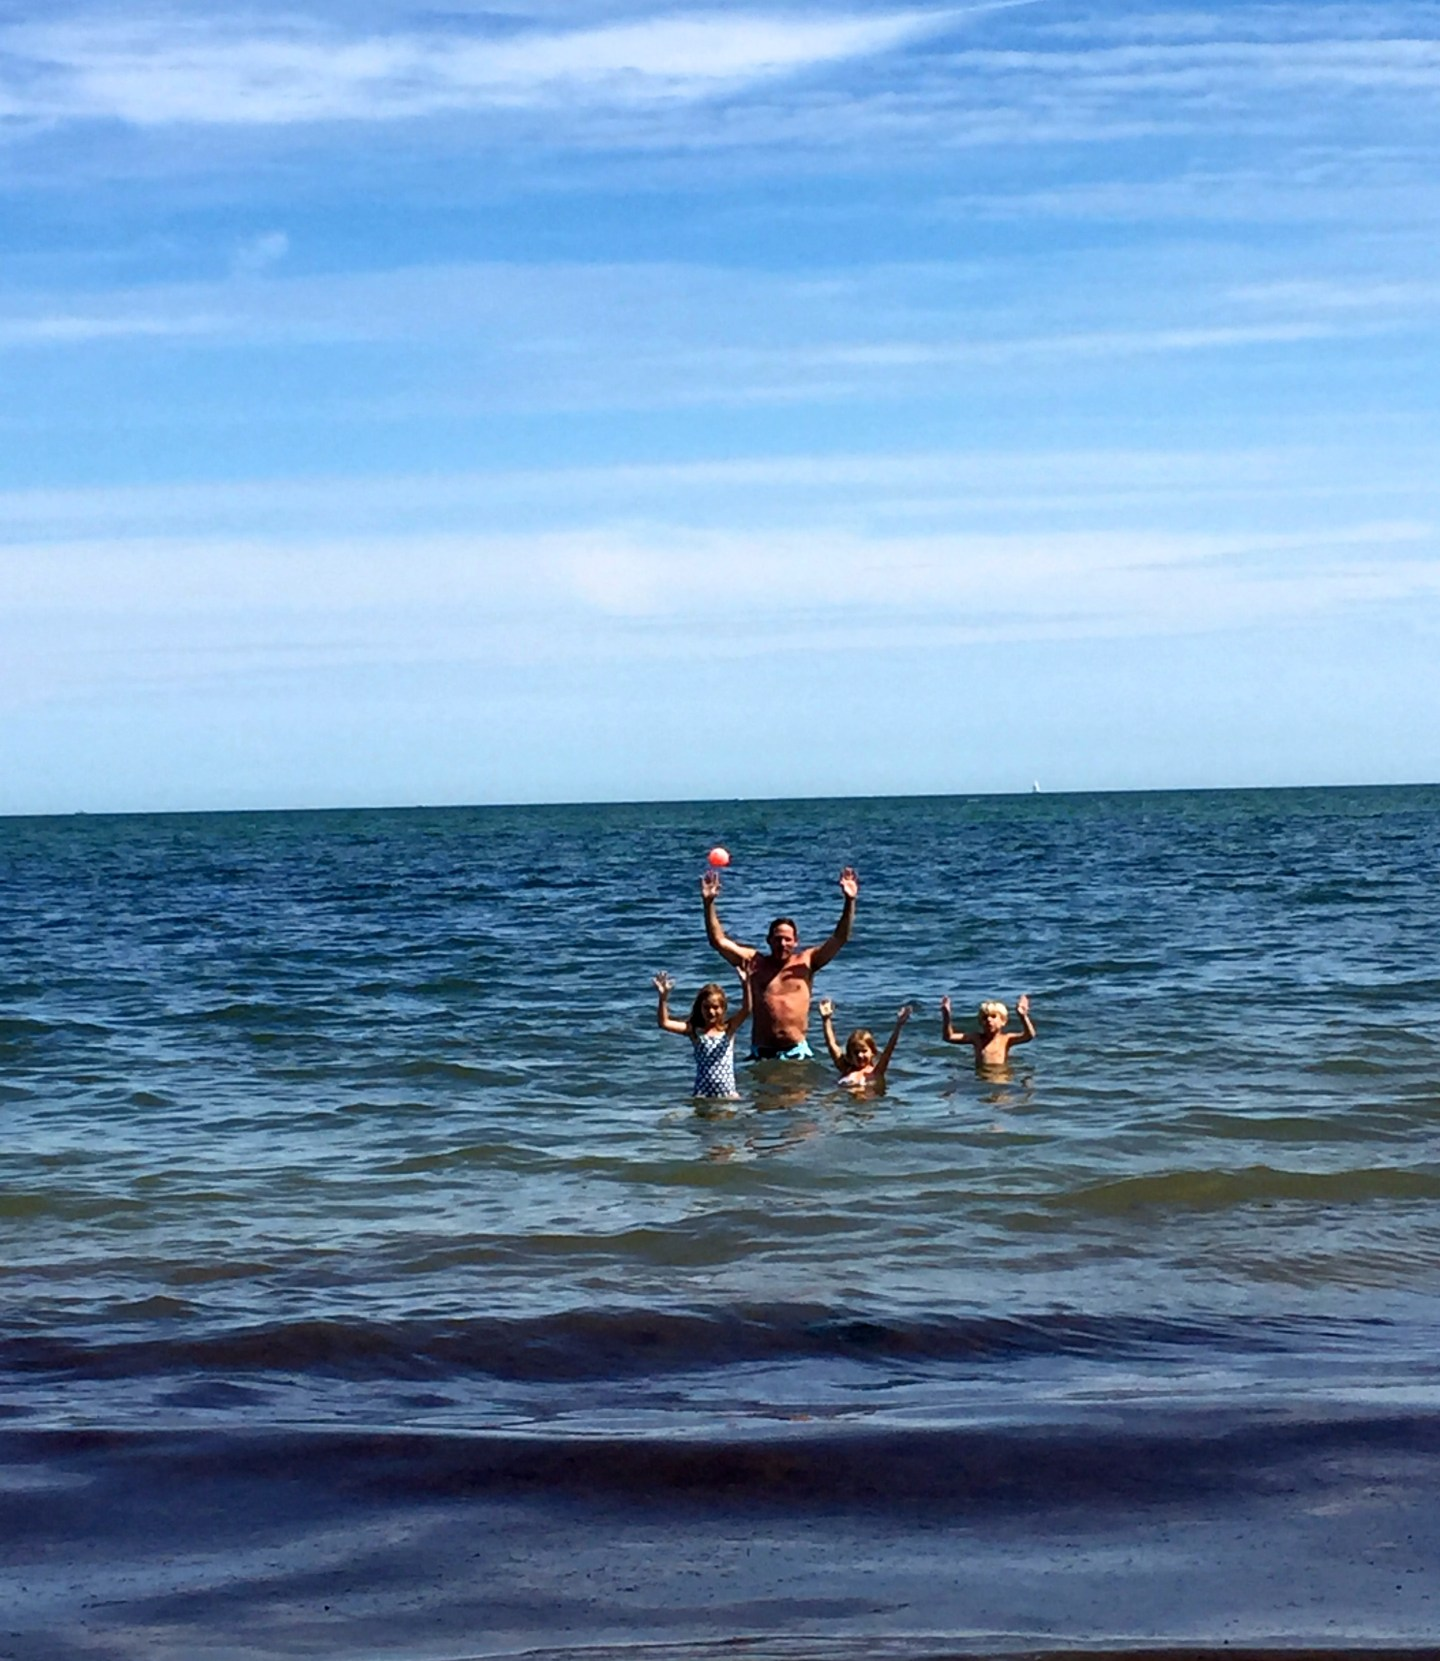 Uncle Whit swimming with the kids in Osterville, MA.